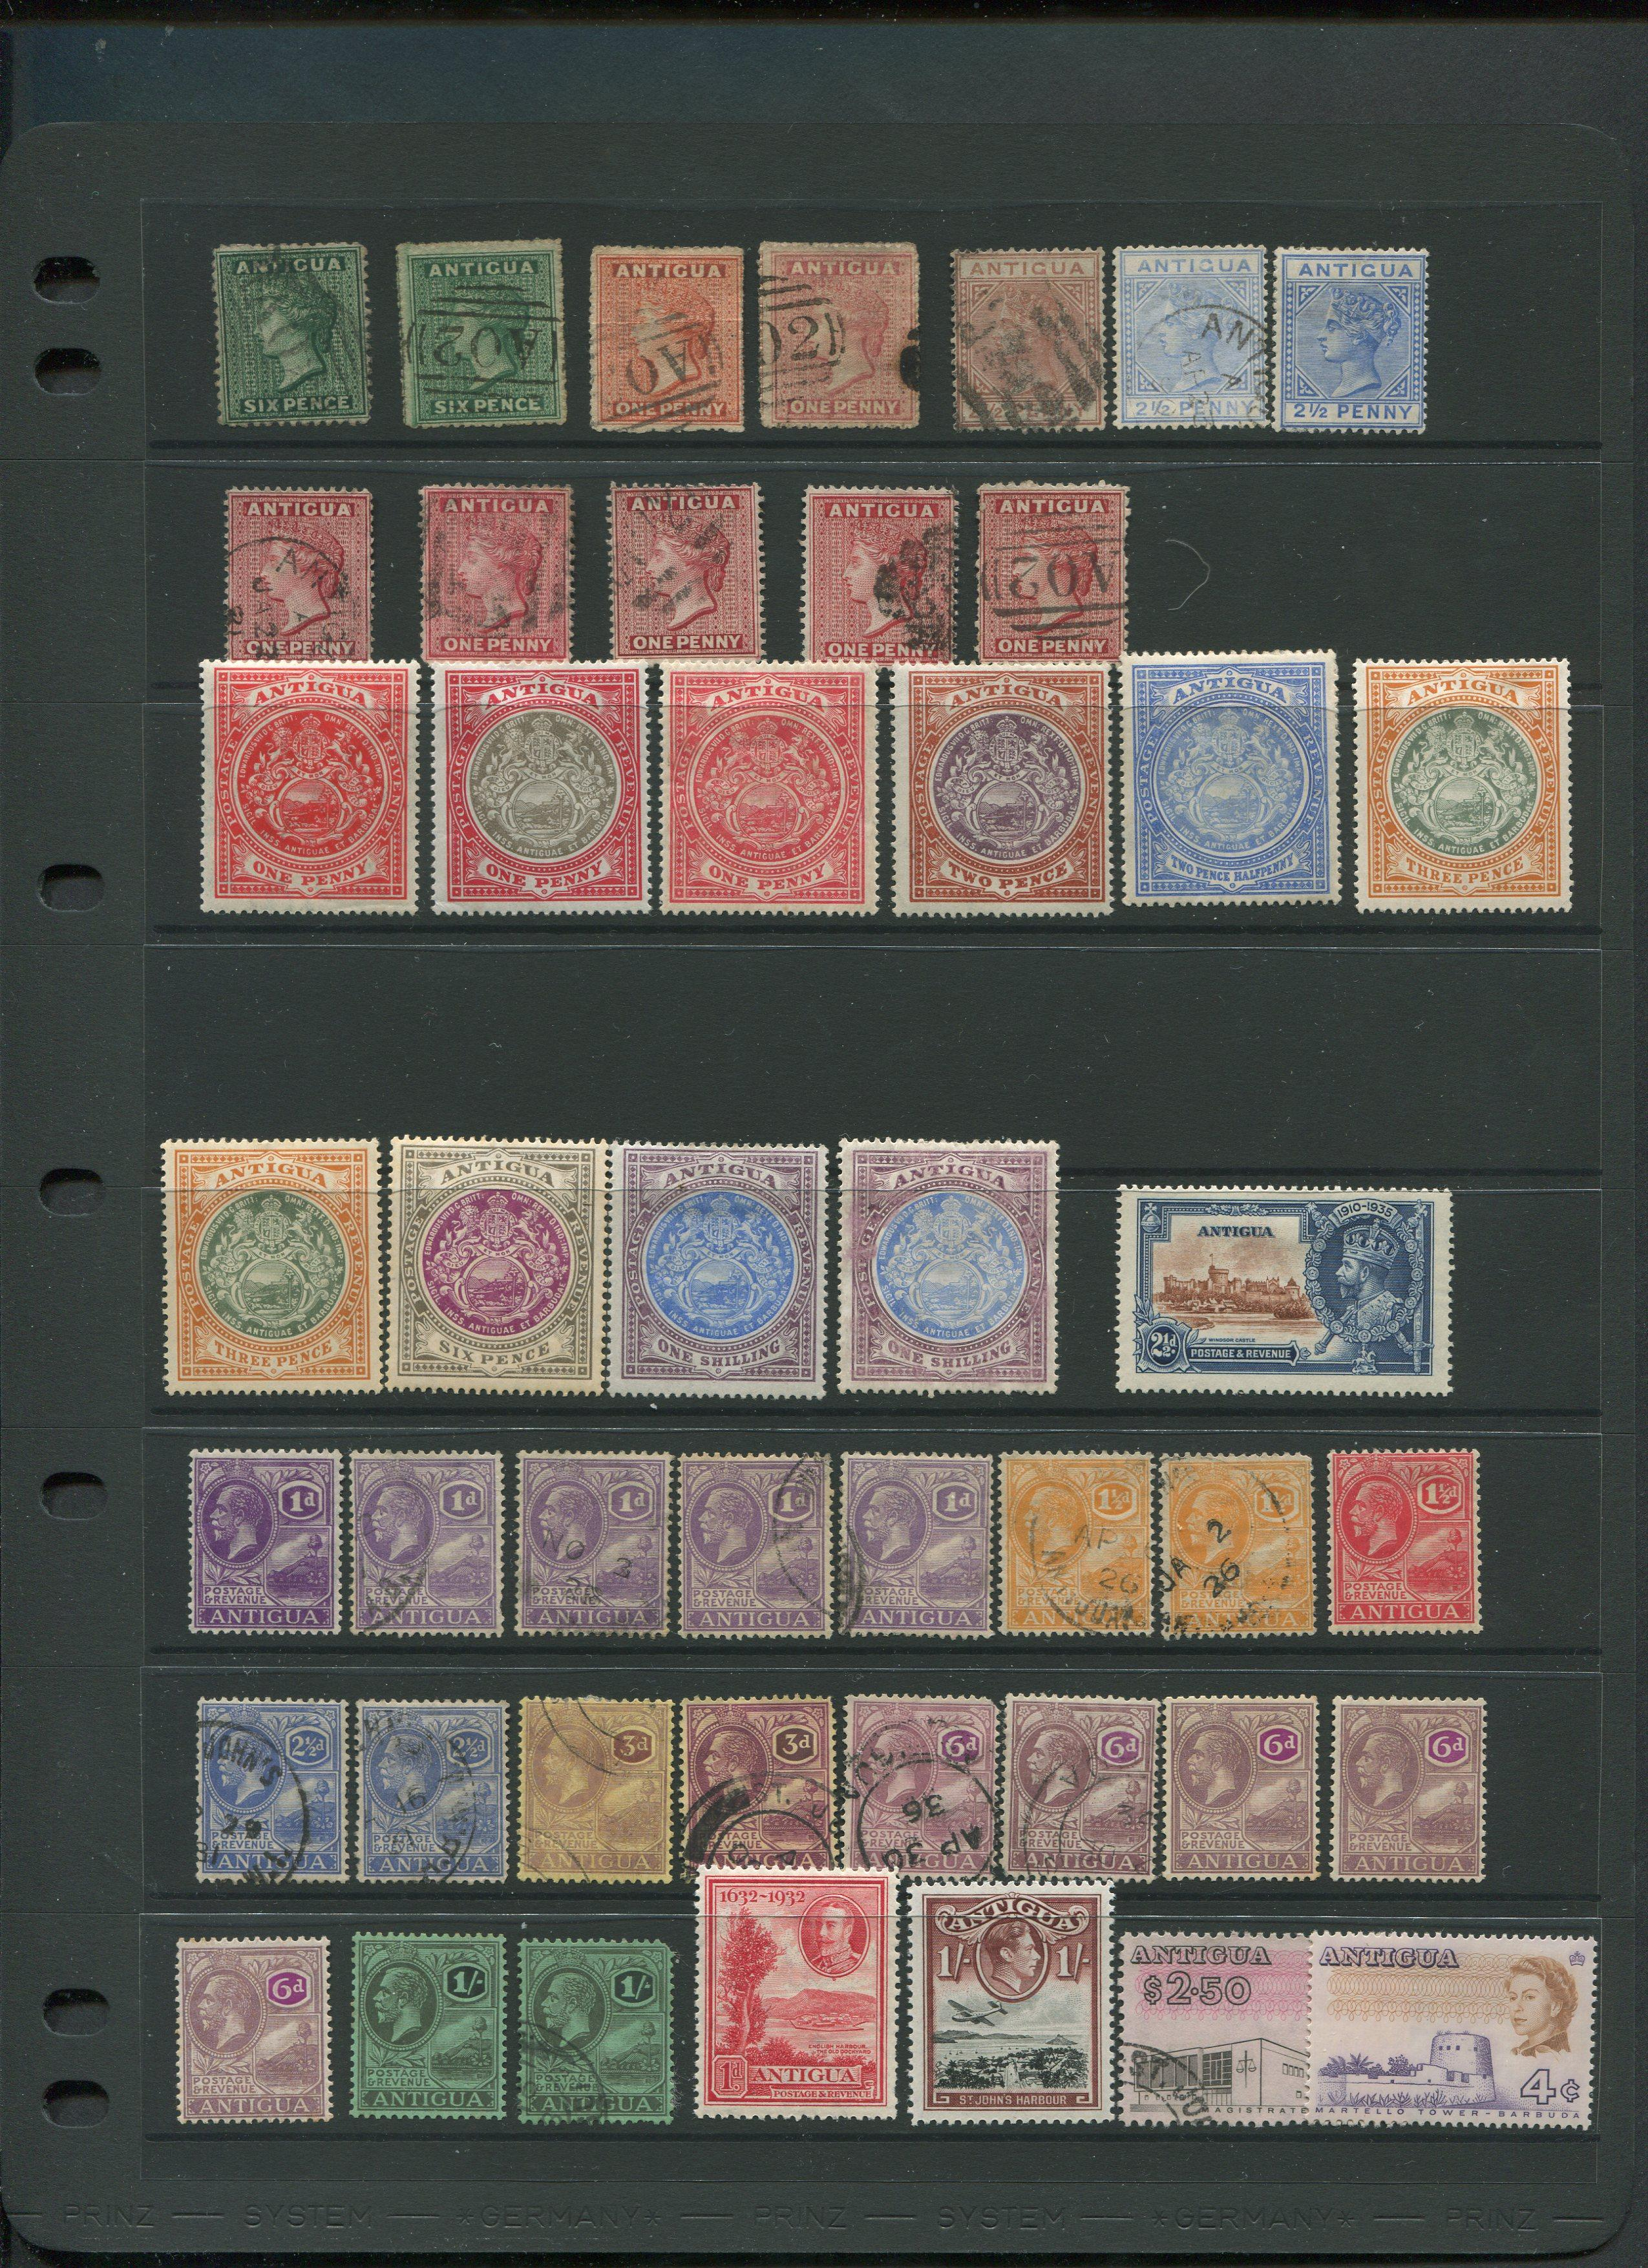 Antigua Stamp Collection From 1862